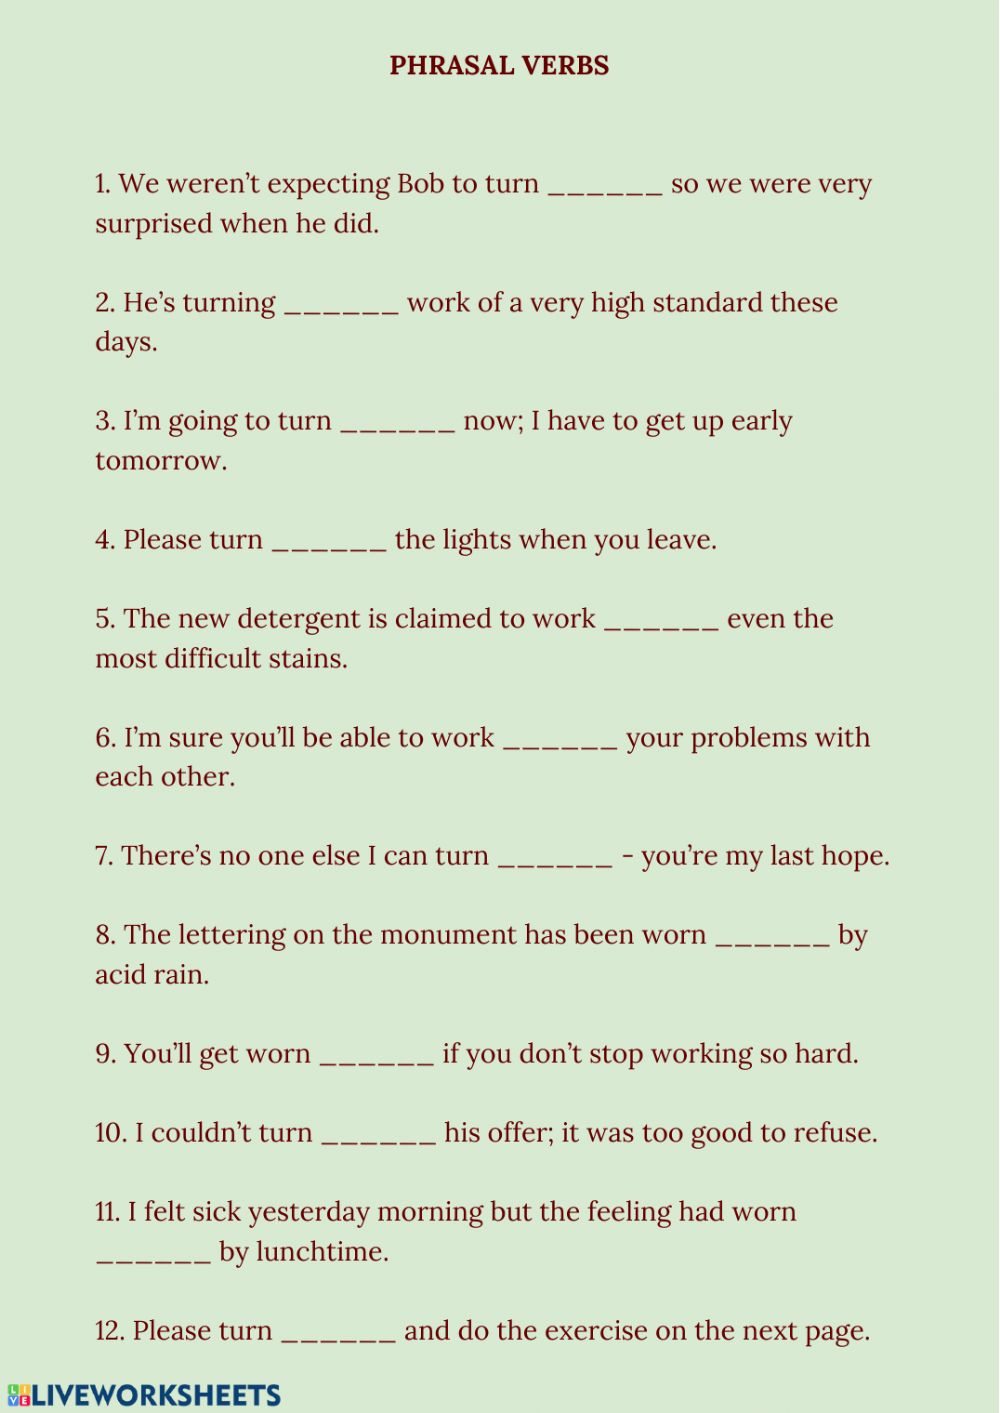 hight resolution of Phrasal Verbs online exercise for 9-11 grades